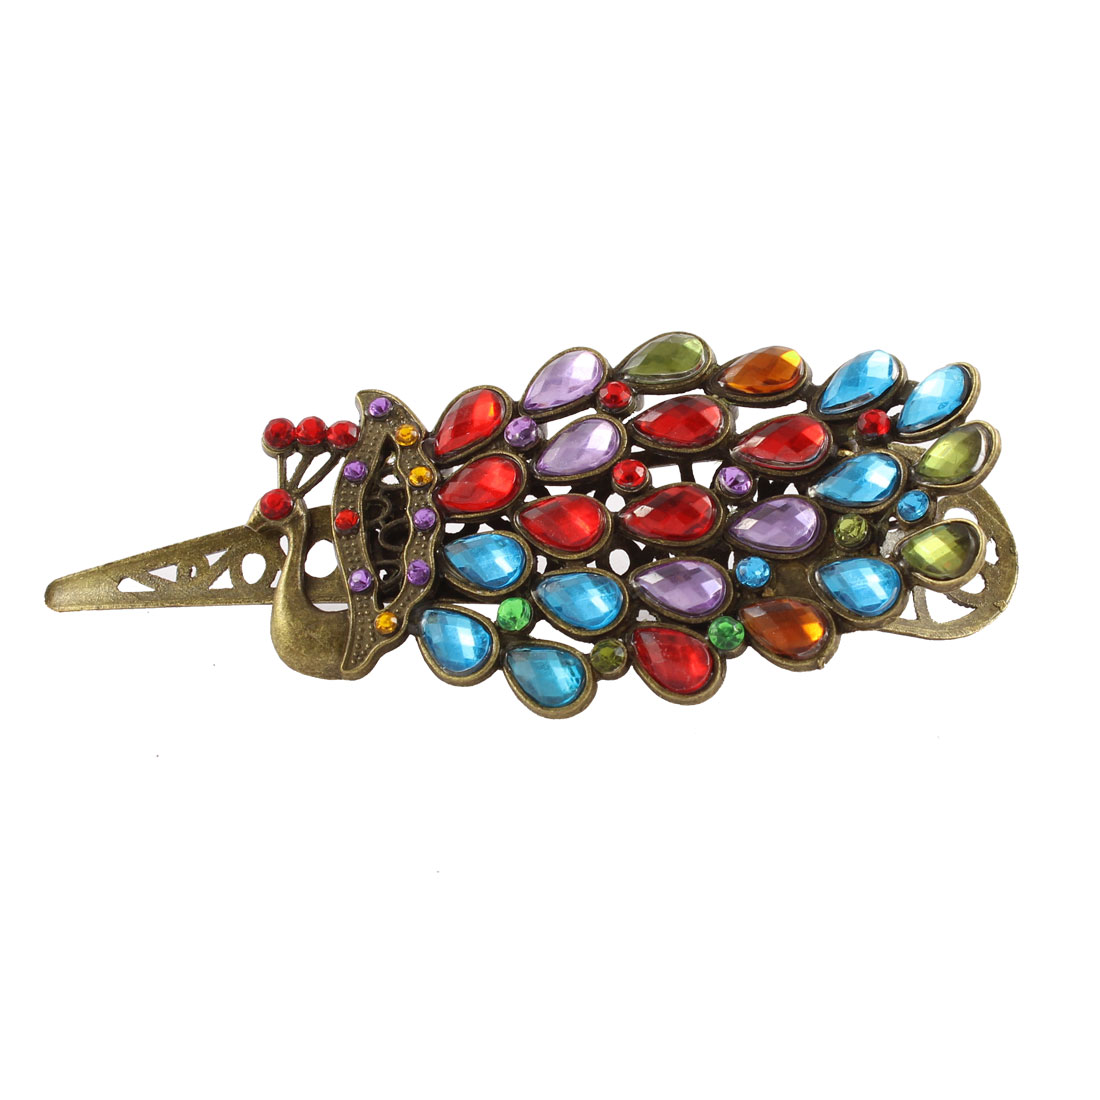 Vintage Style Peacock Rhinestone Hair Barrette Hairclip Hairpin